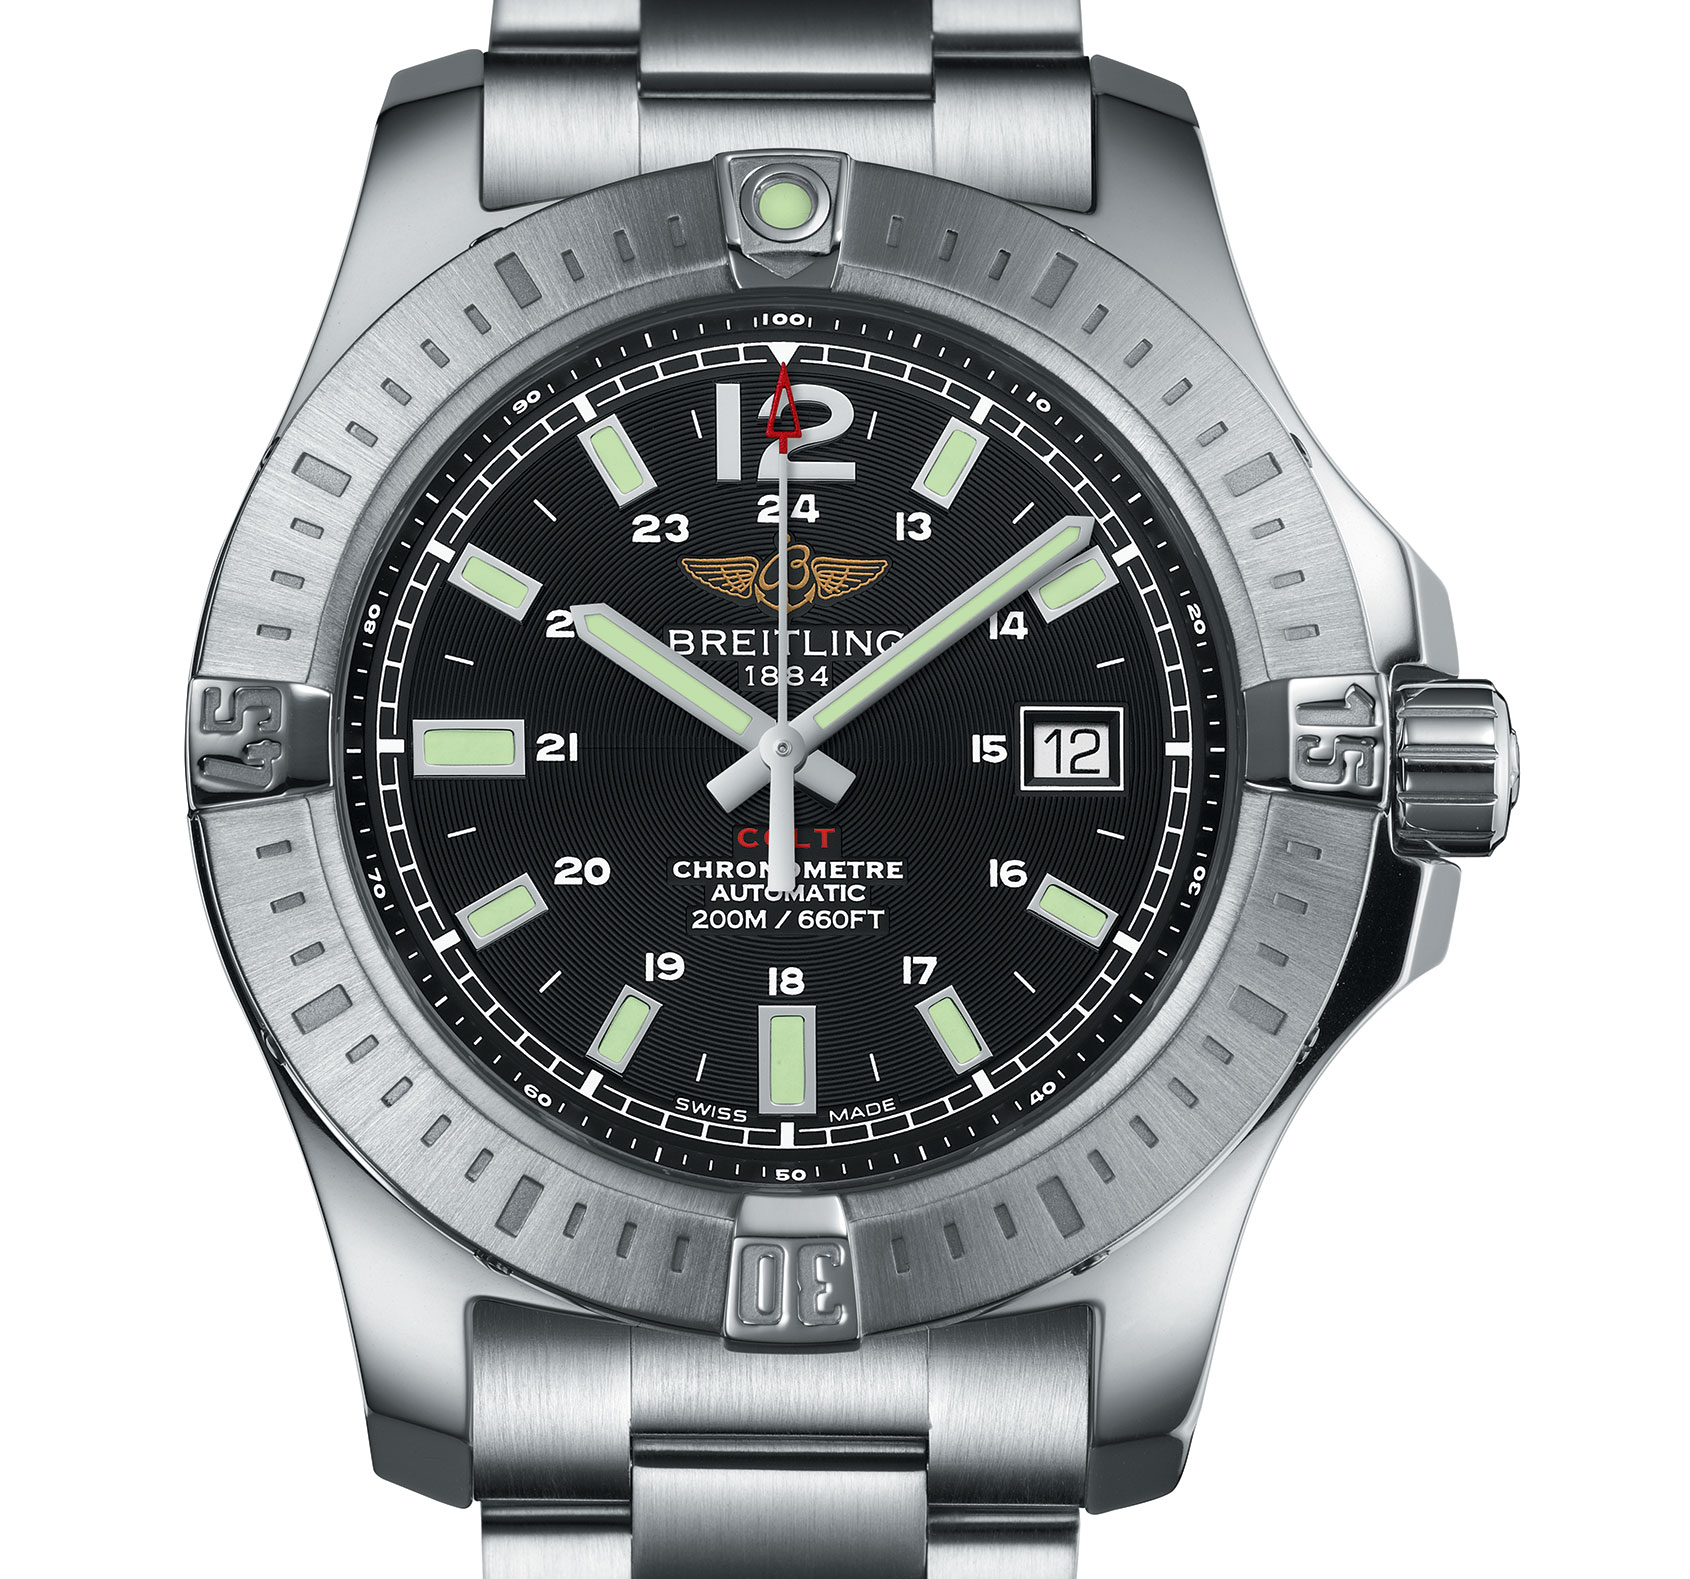 Brietling colt receives a revamp for Breitling automatic